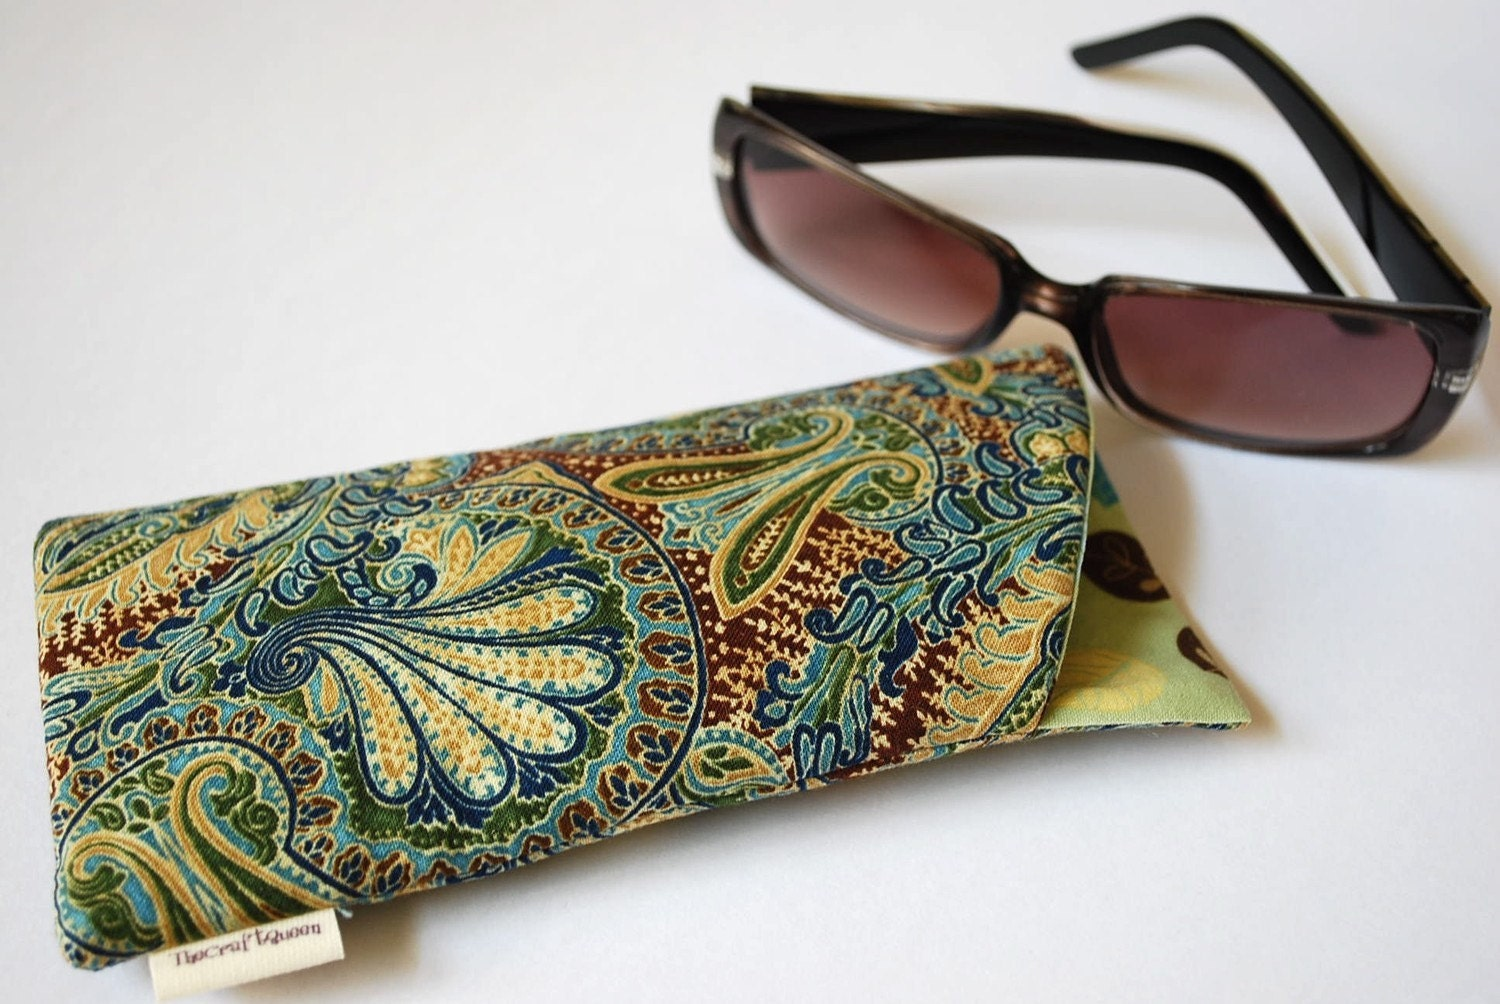 Eyeglass sunglass padded case in earthy paisley leaf cotton fabric